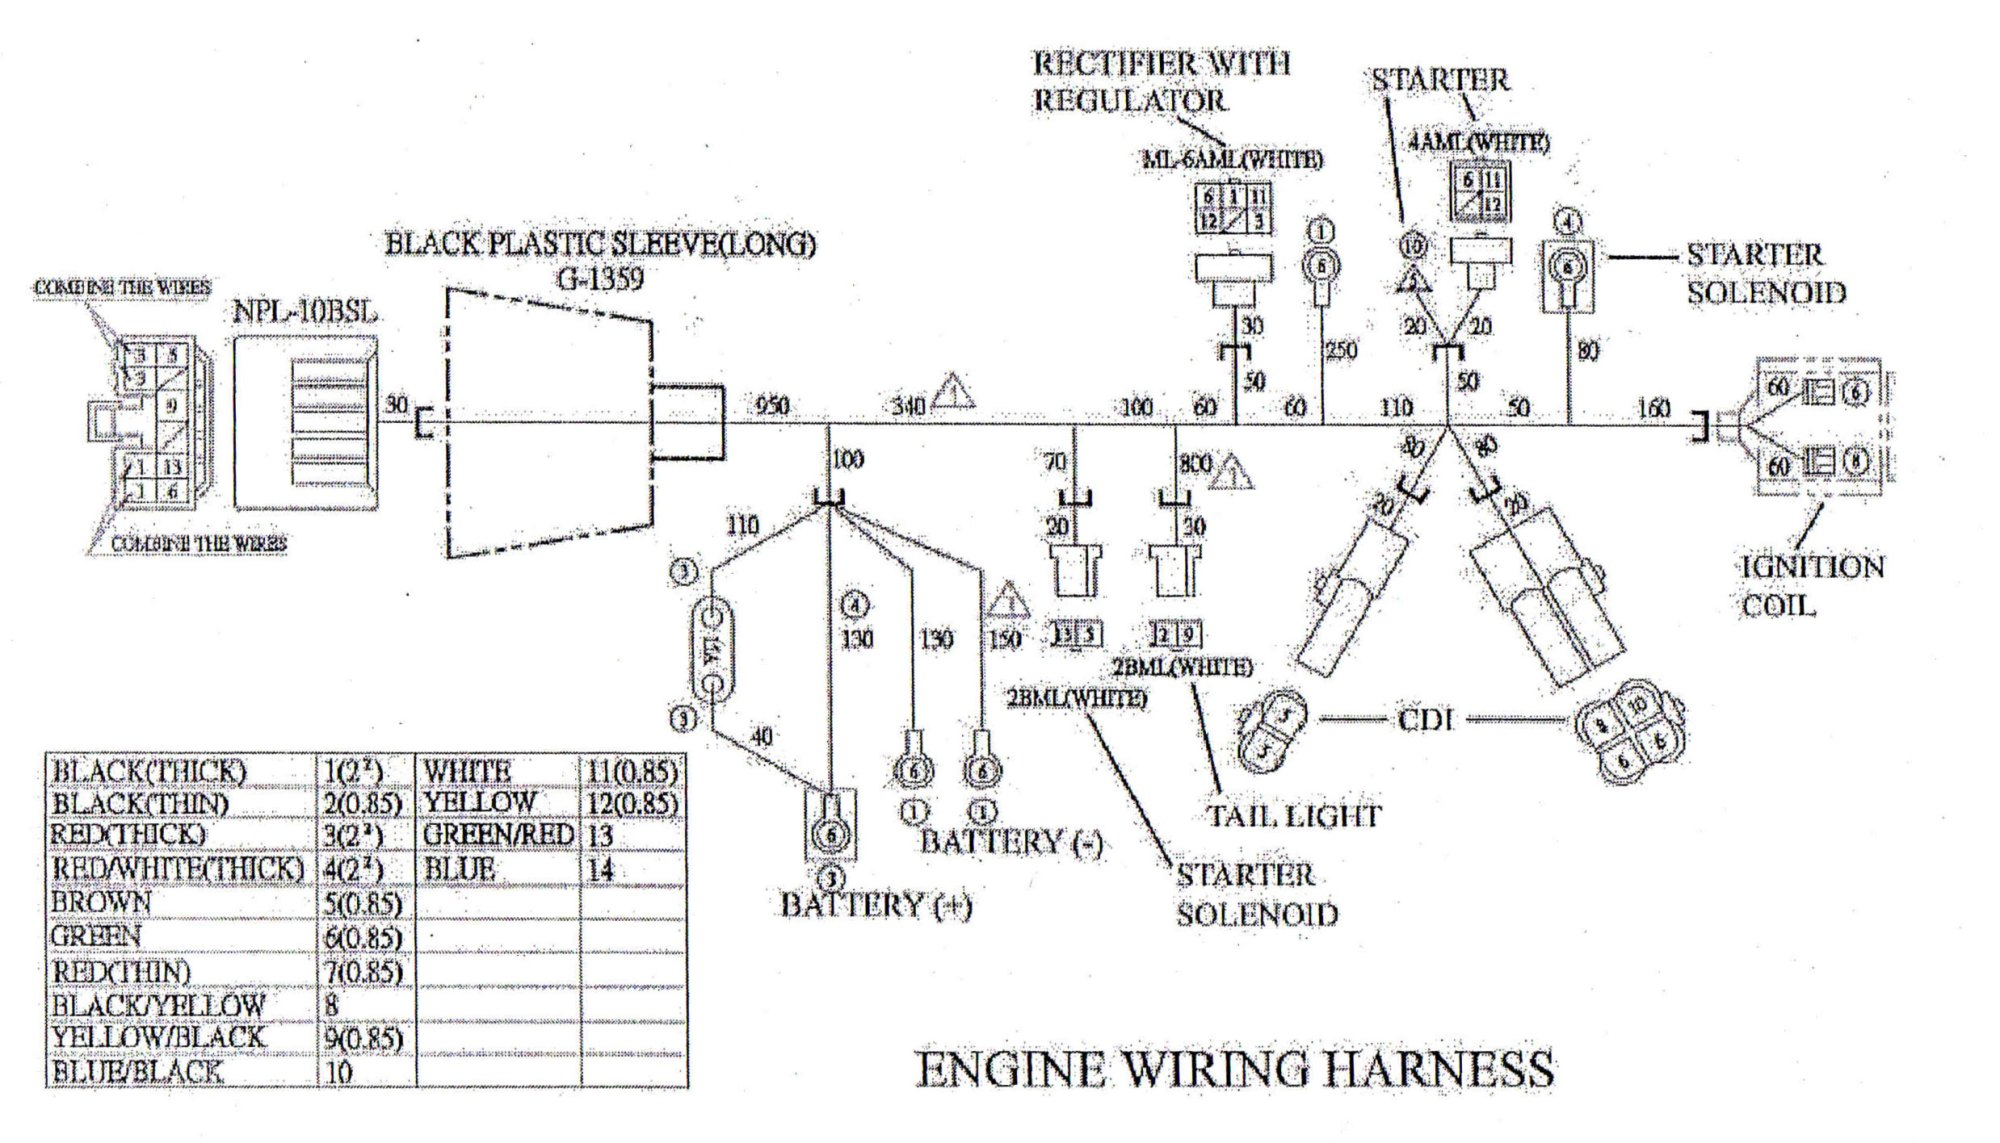 hight resolution of baja 49cc wiring diagram wiring library rh 31 evitta de 49cc pocket bike wiring system pocket bike wiring harness diagram